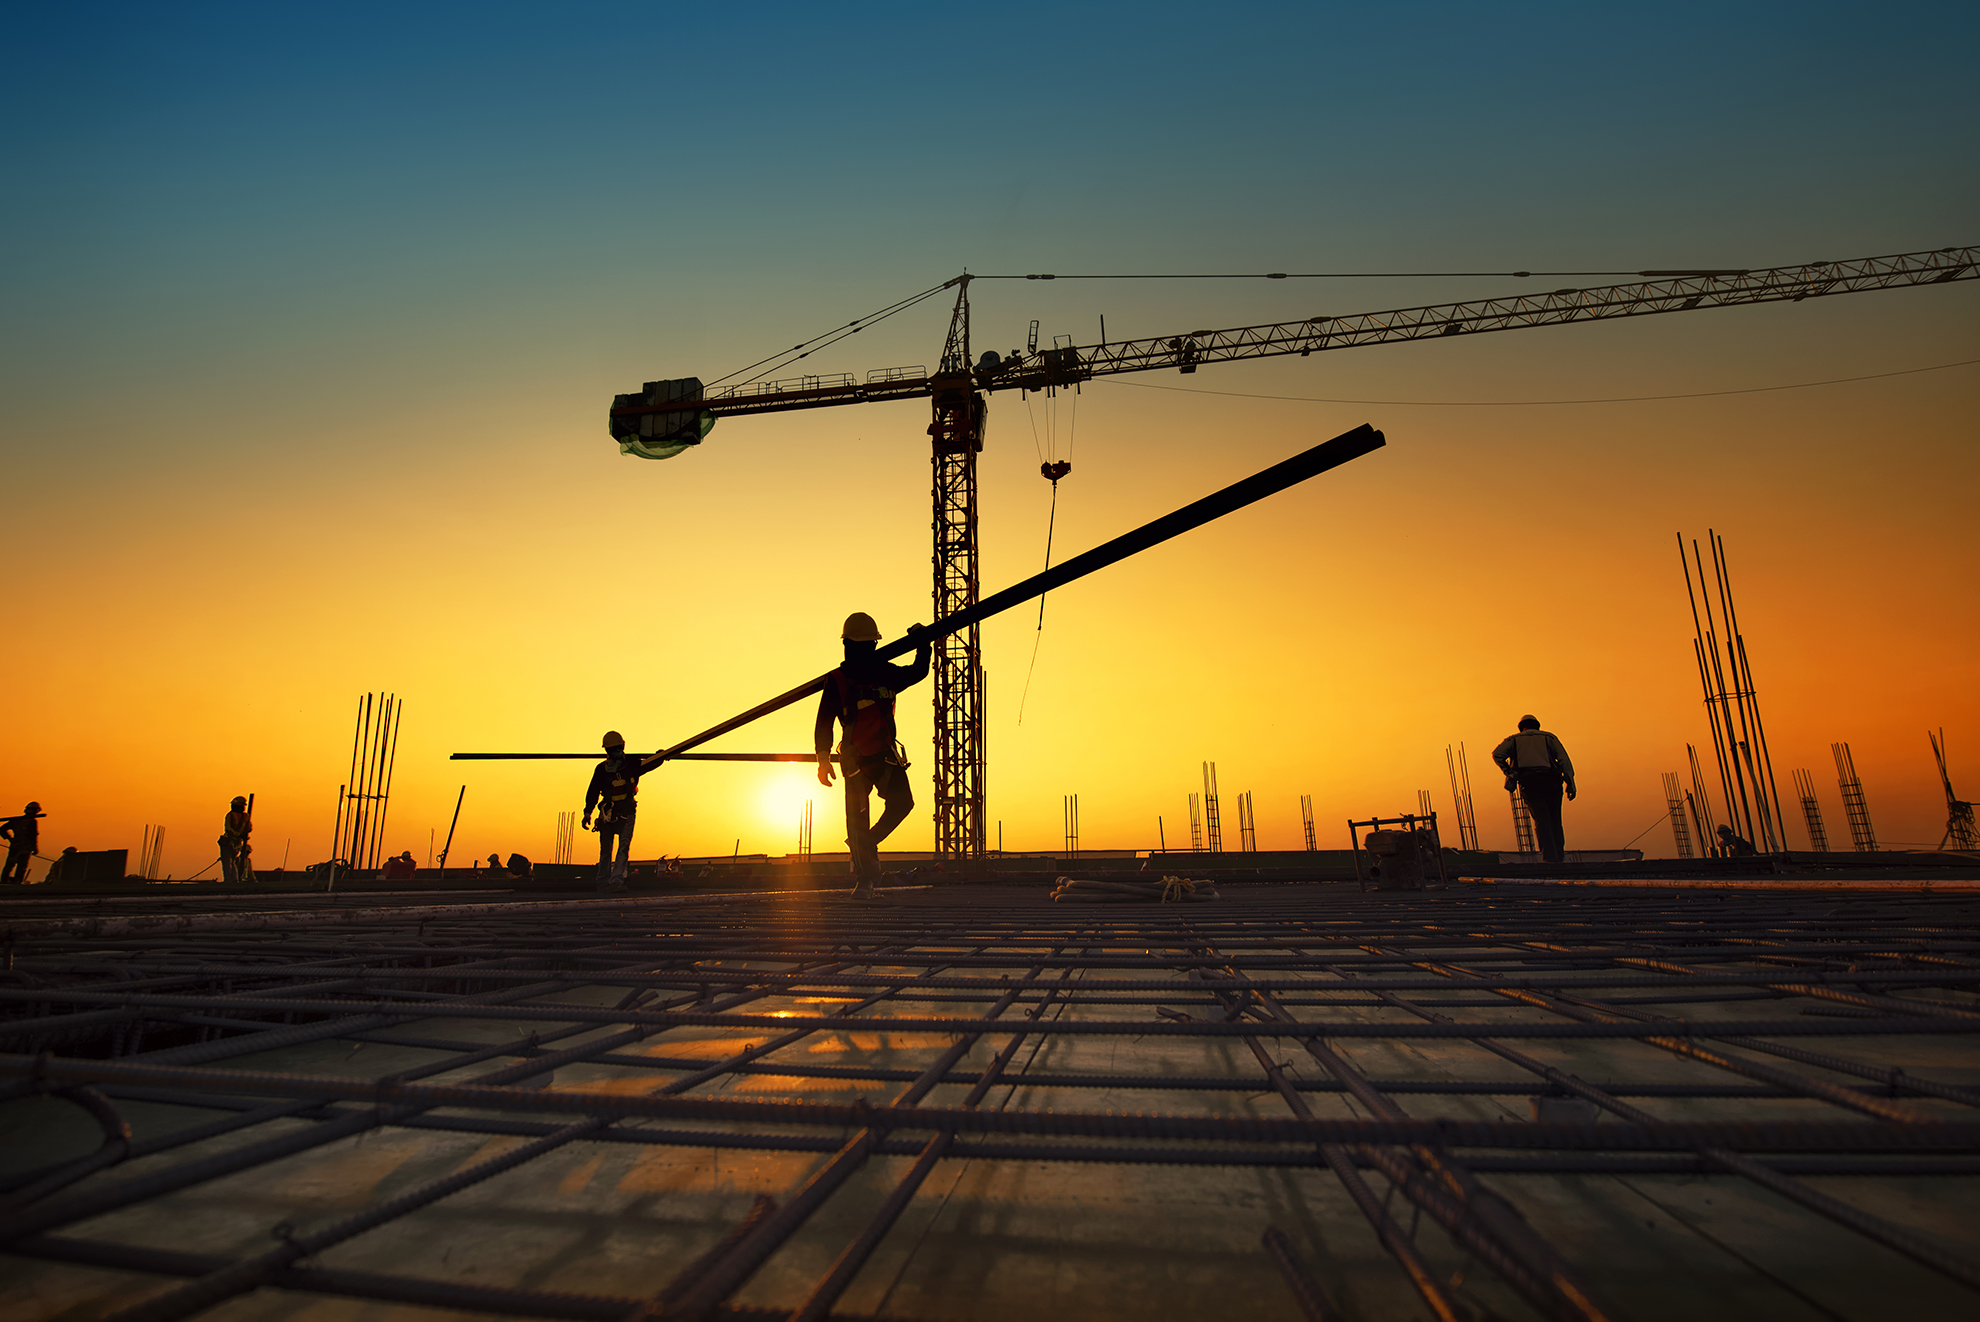 silhouette-construction-workers-fabricating-steel-reinforcement-bar-construction-si